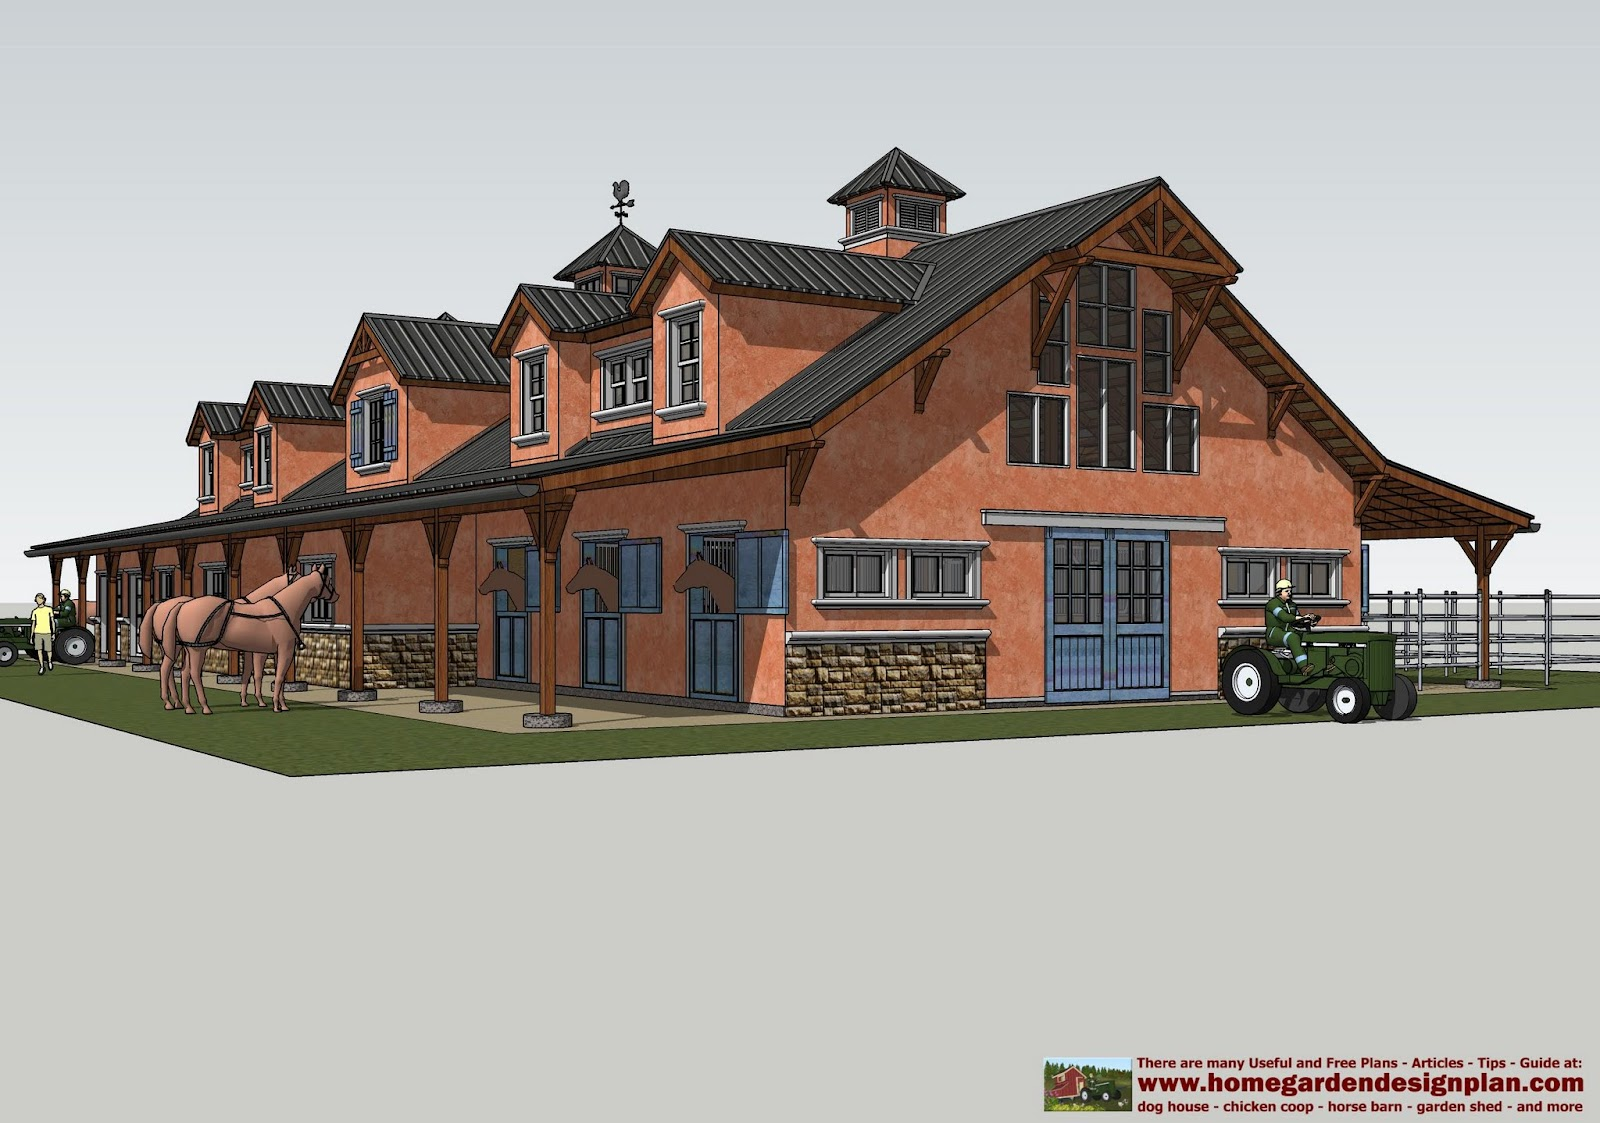 barn plans stable designs building plans for horse - HD1600×1123